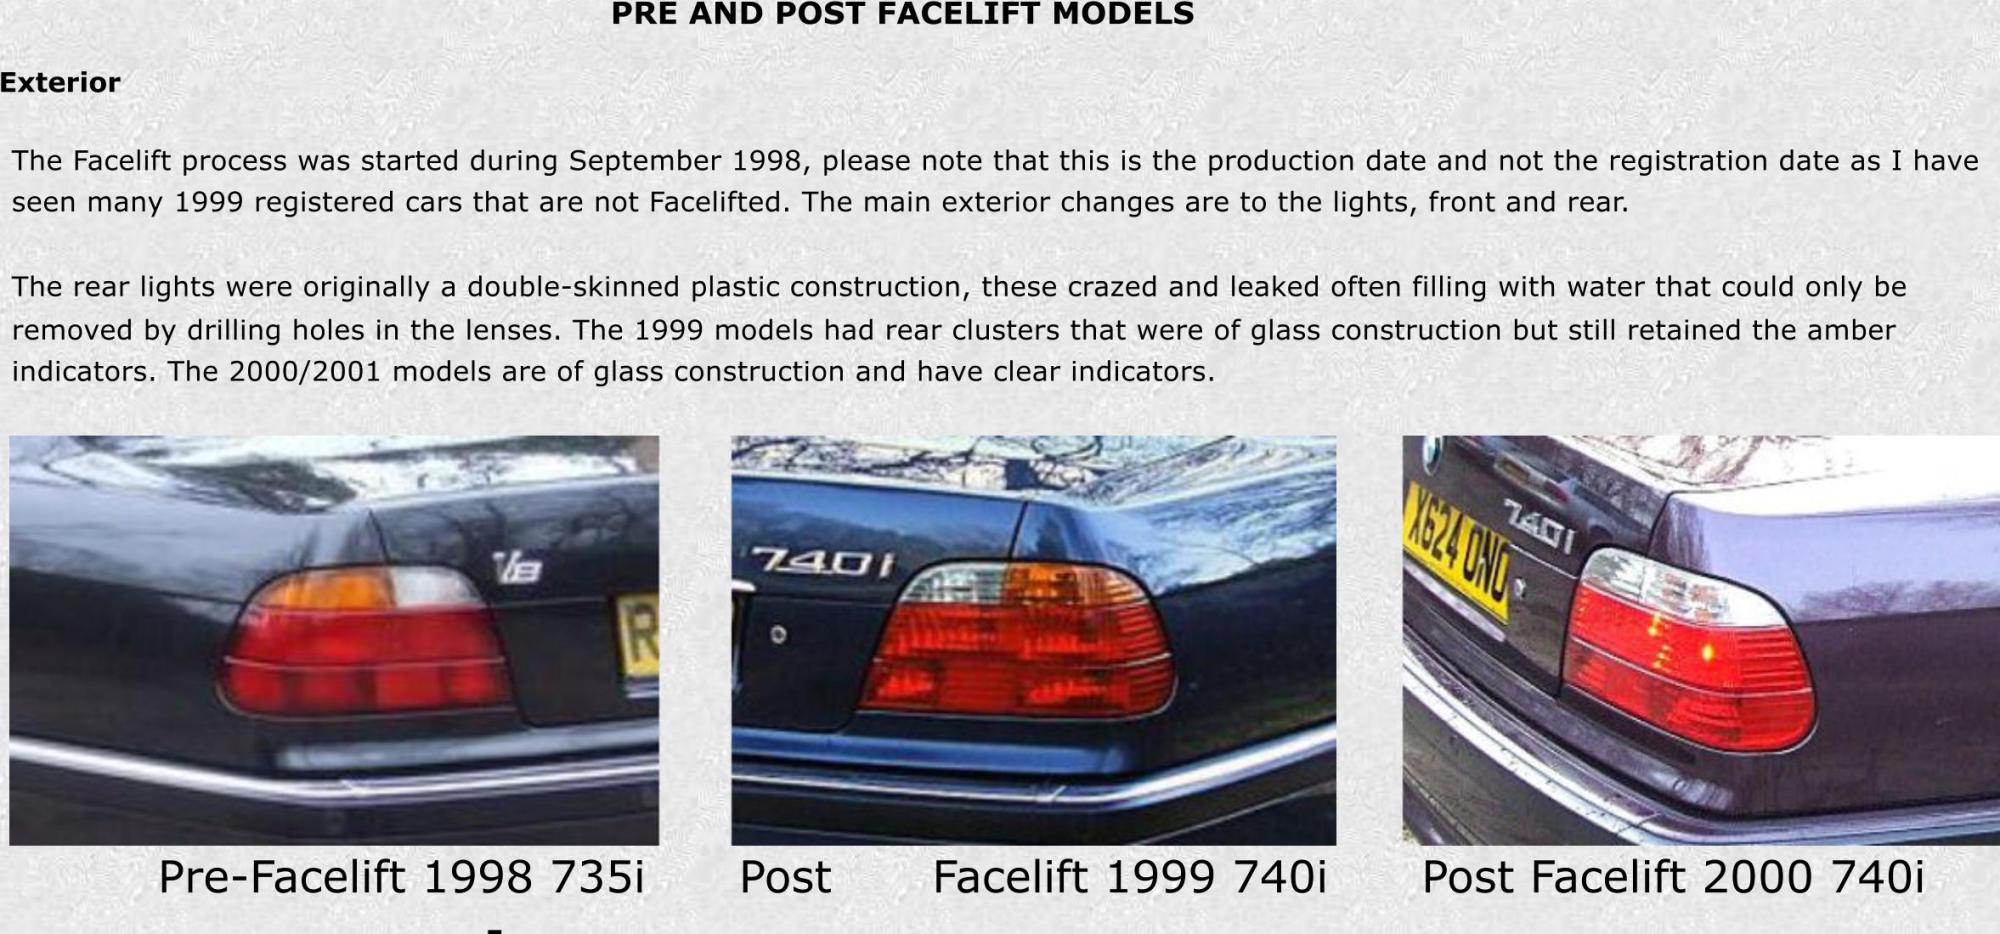 hight resolution of  pre and post facelift models exterior pre facelift 1998 735i post facelift 1999 740i